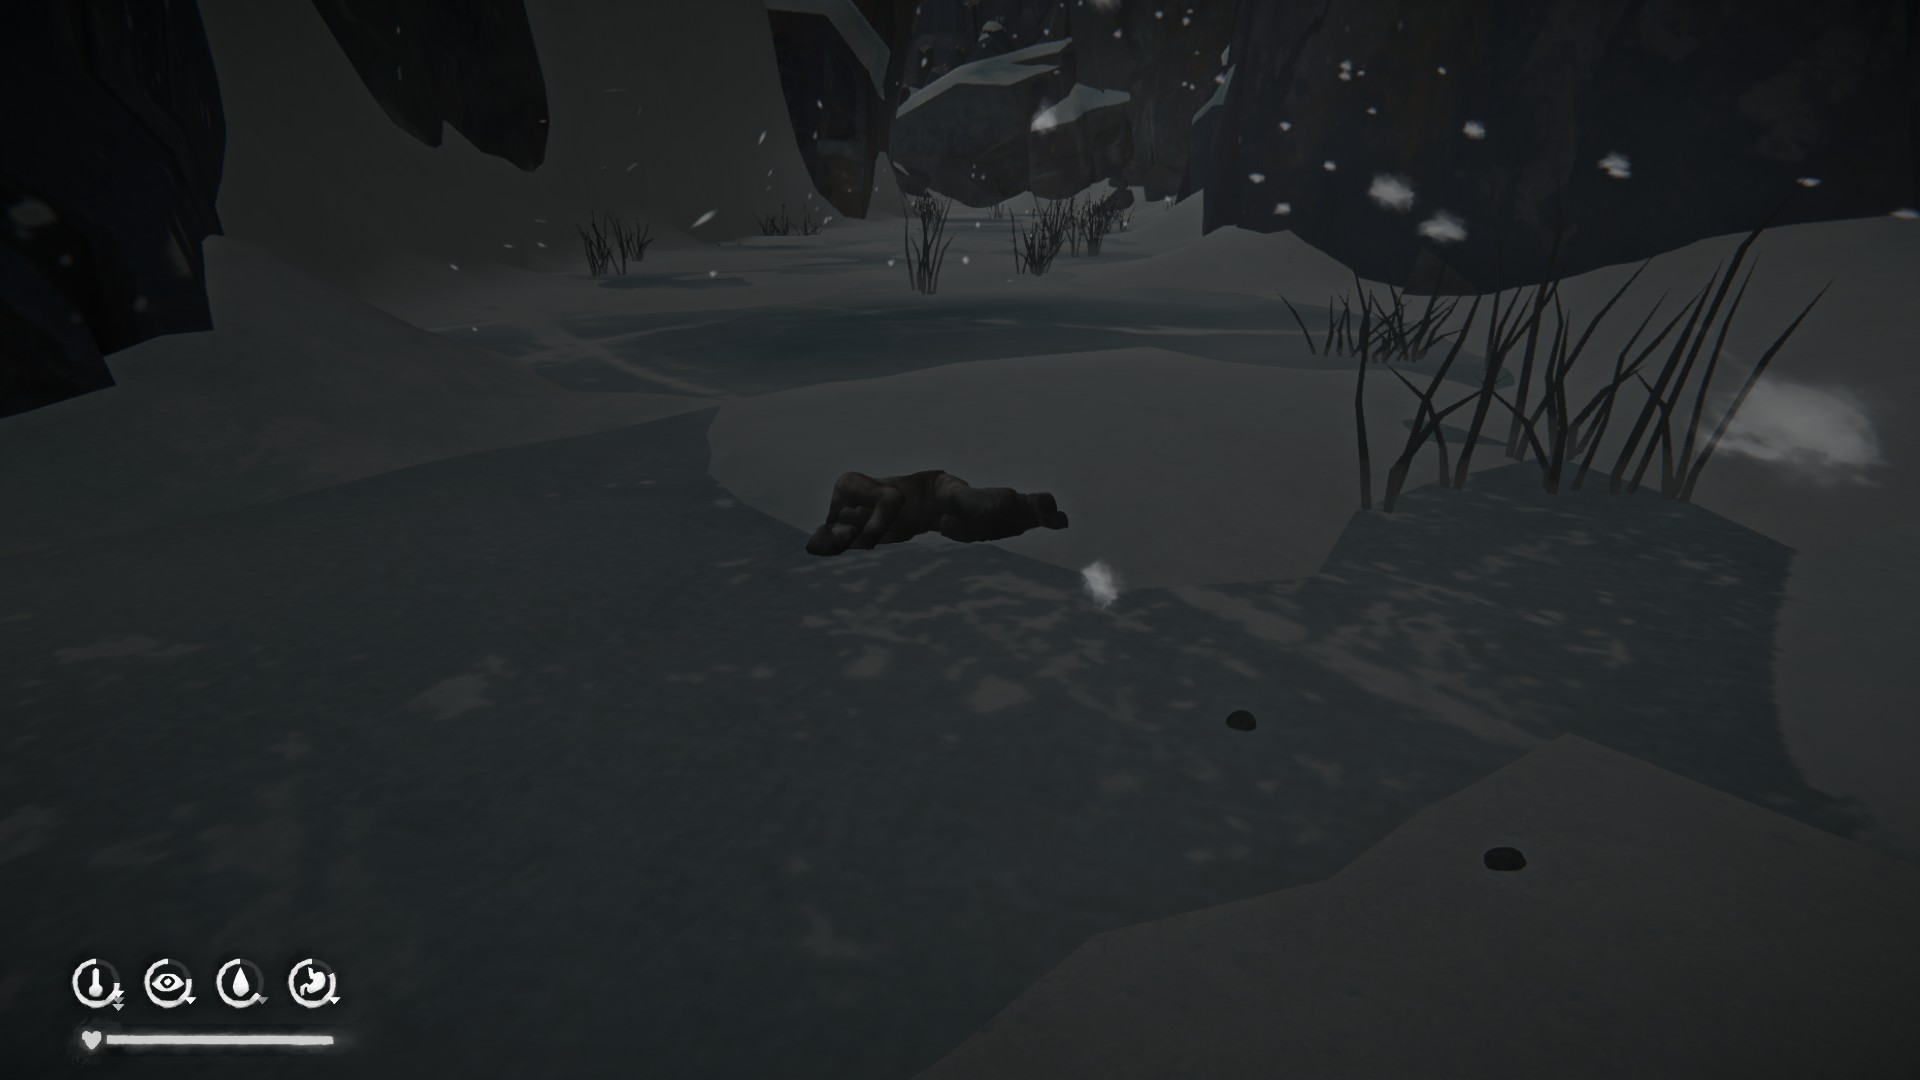 The Long Dark - All Achievements Playthrough & Collectible Items Guide - Missing Power Workers - 04B3A22